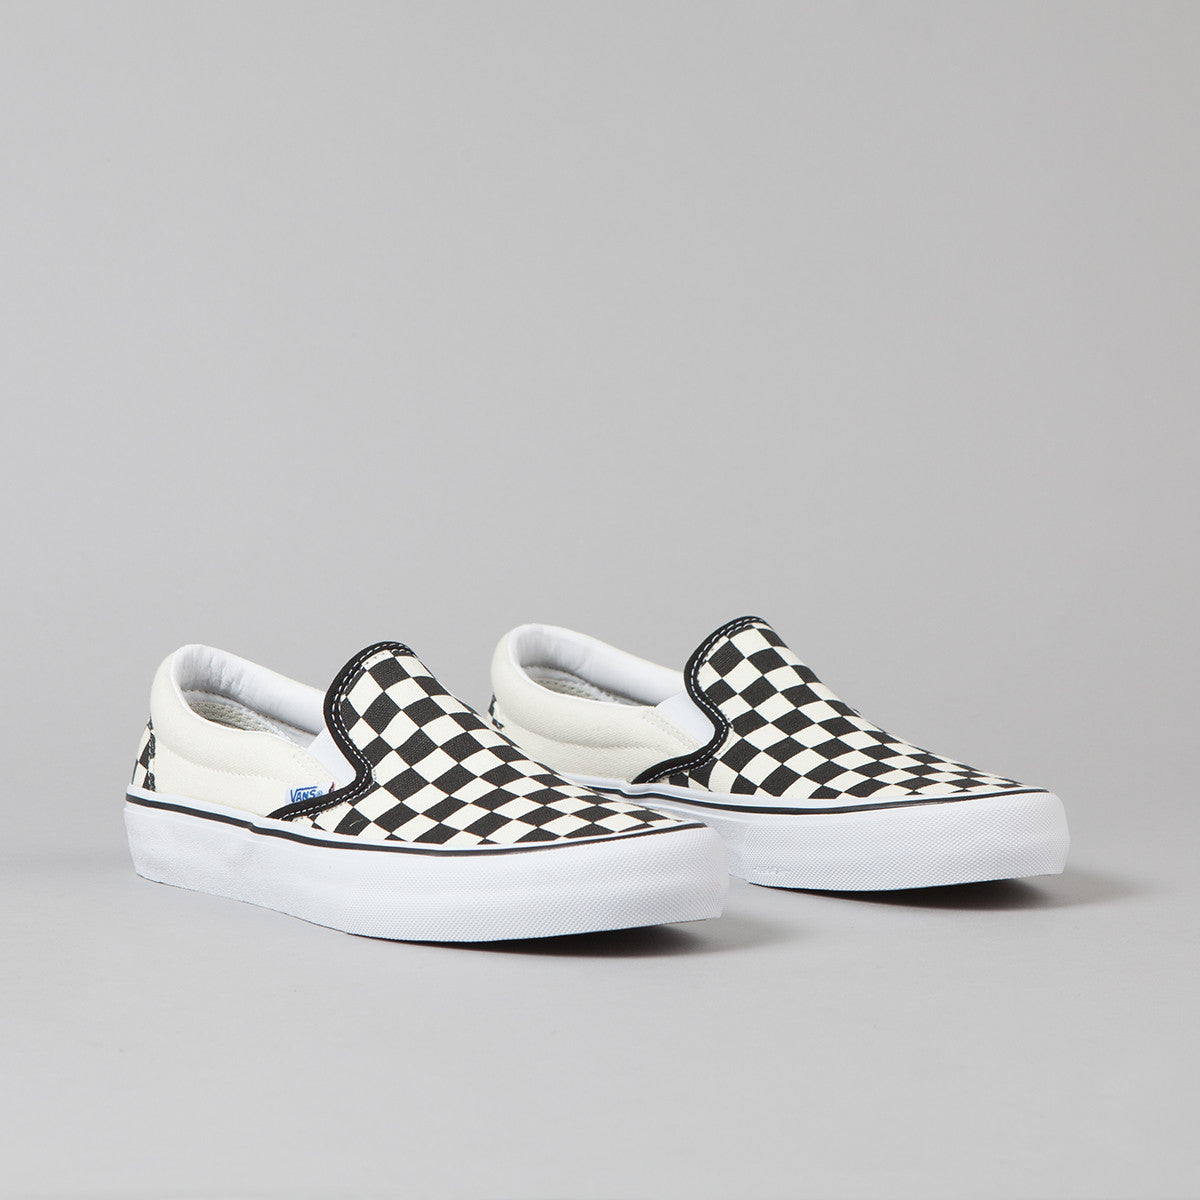 Vans 50th Slip On Pro '82 Shoes - Checkerboard